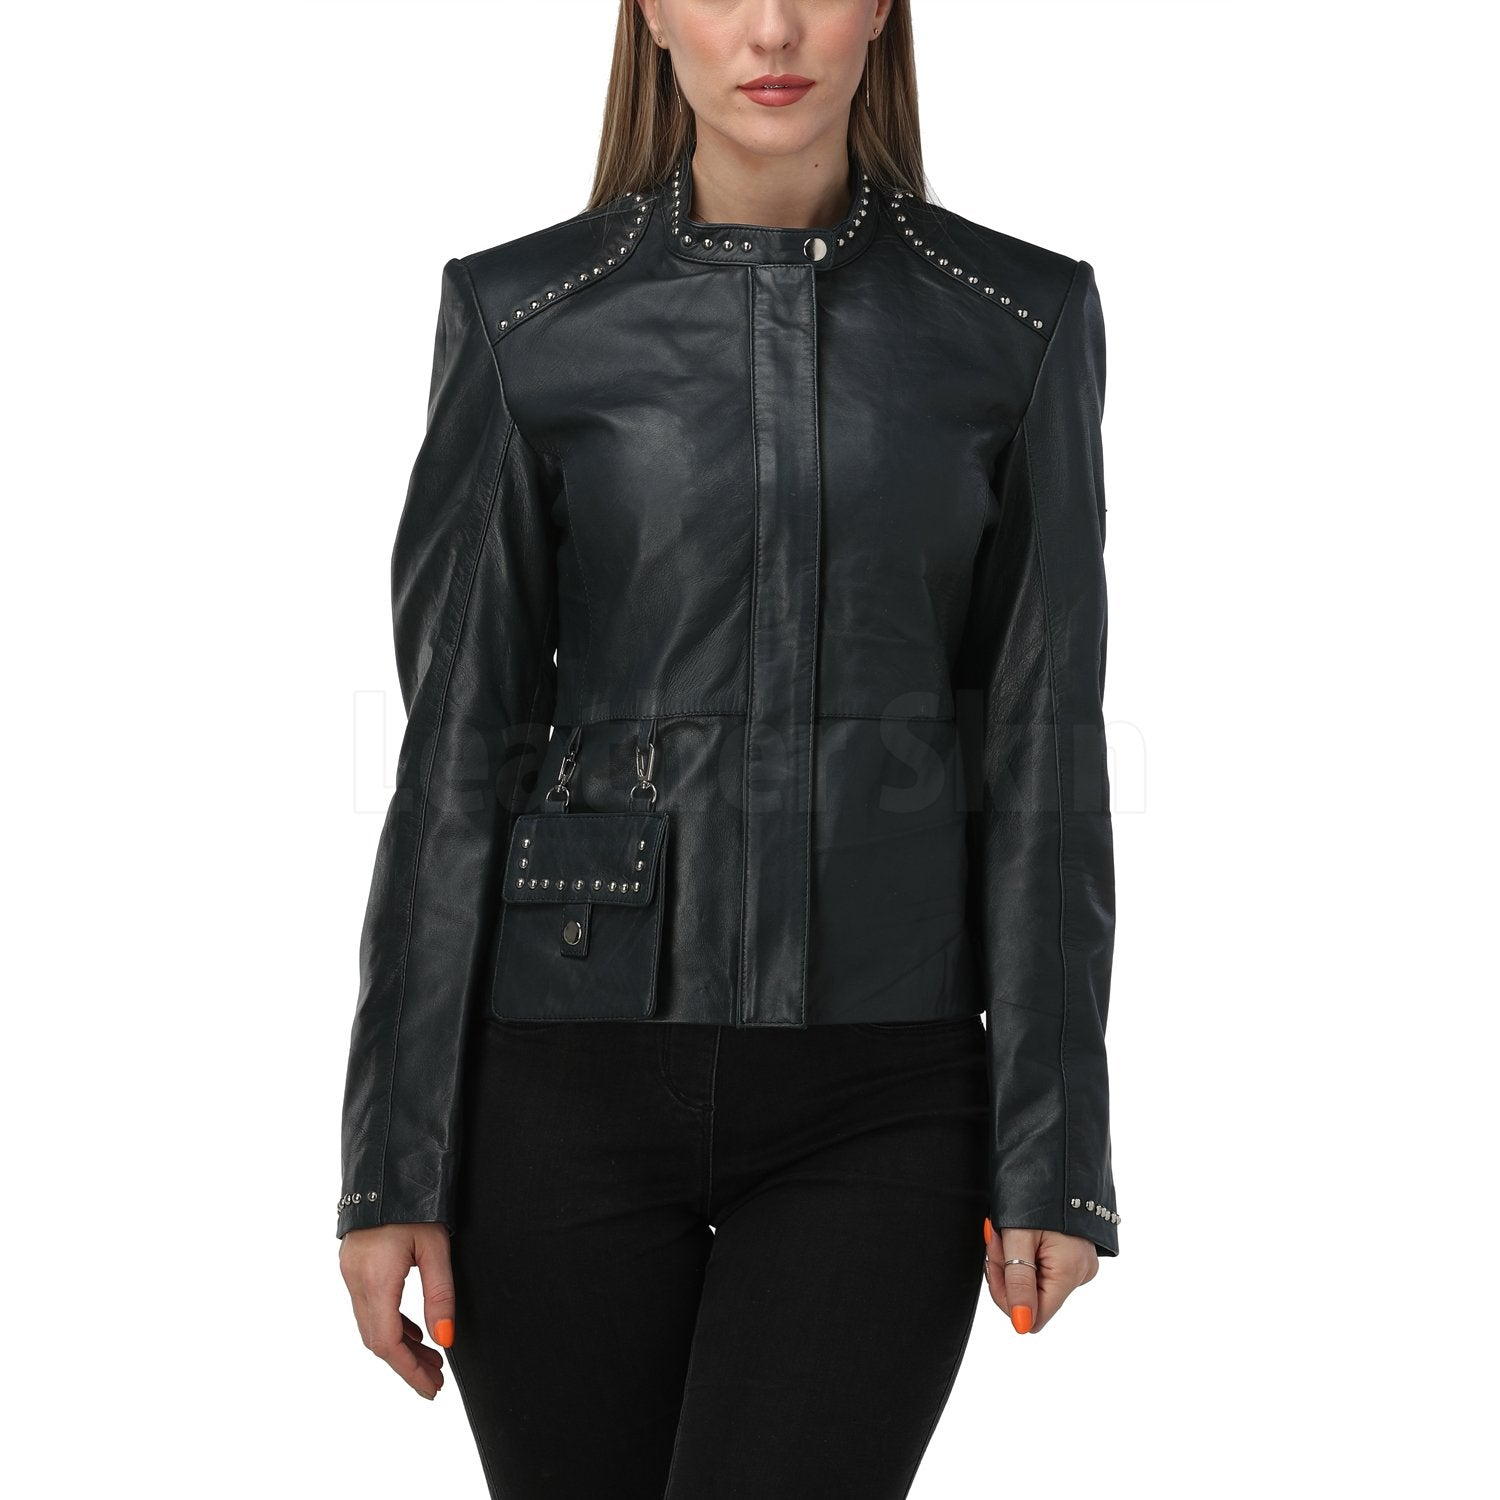 Luna Navy Blue Studded Leather Jacket